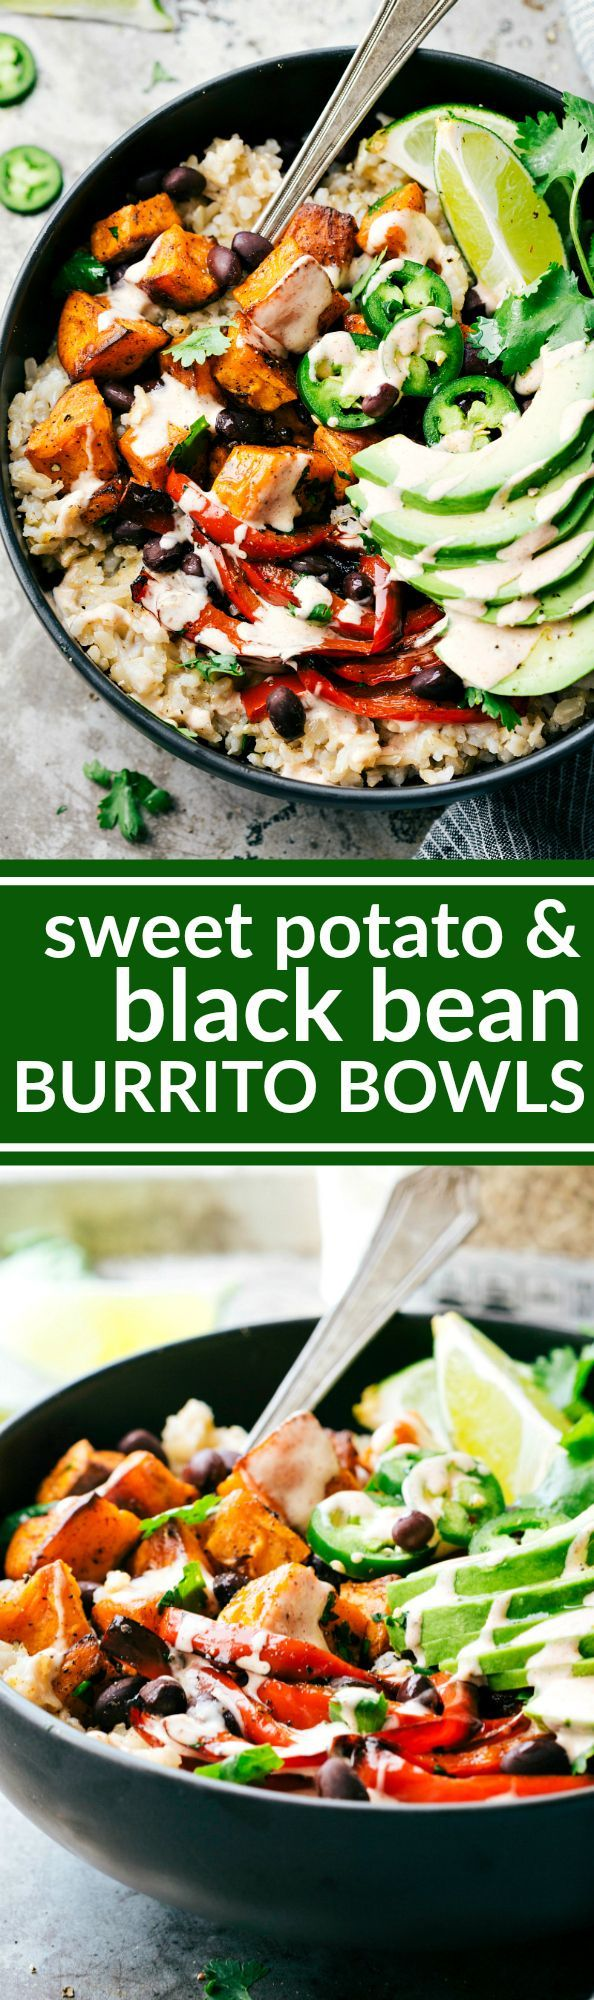 SWEET POTATO BURRITO BOWLS! A delicious and simple to make veggie black bean burrito bowls -- brown rice, seasoned & roasted sweet potatoes + bell peppers, black beans, and avocado with the most incredible chipotle lime sauce. via http://chelseasmessyapron.com